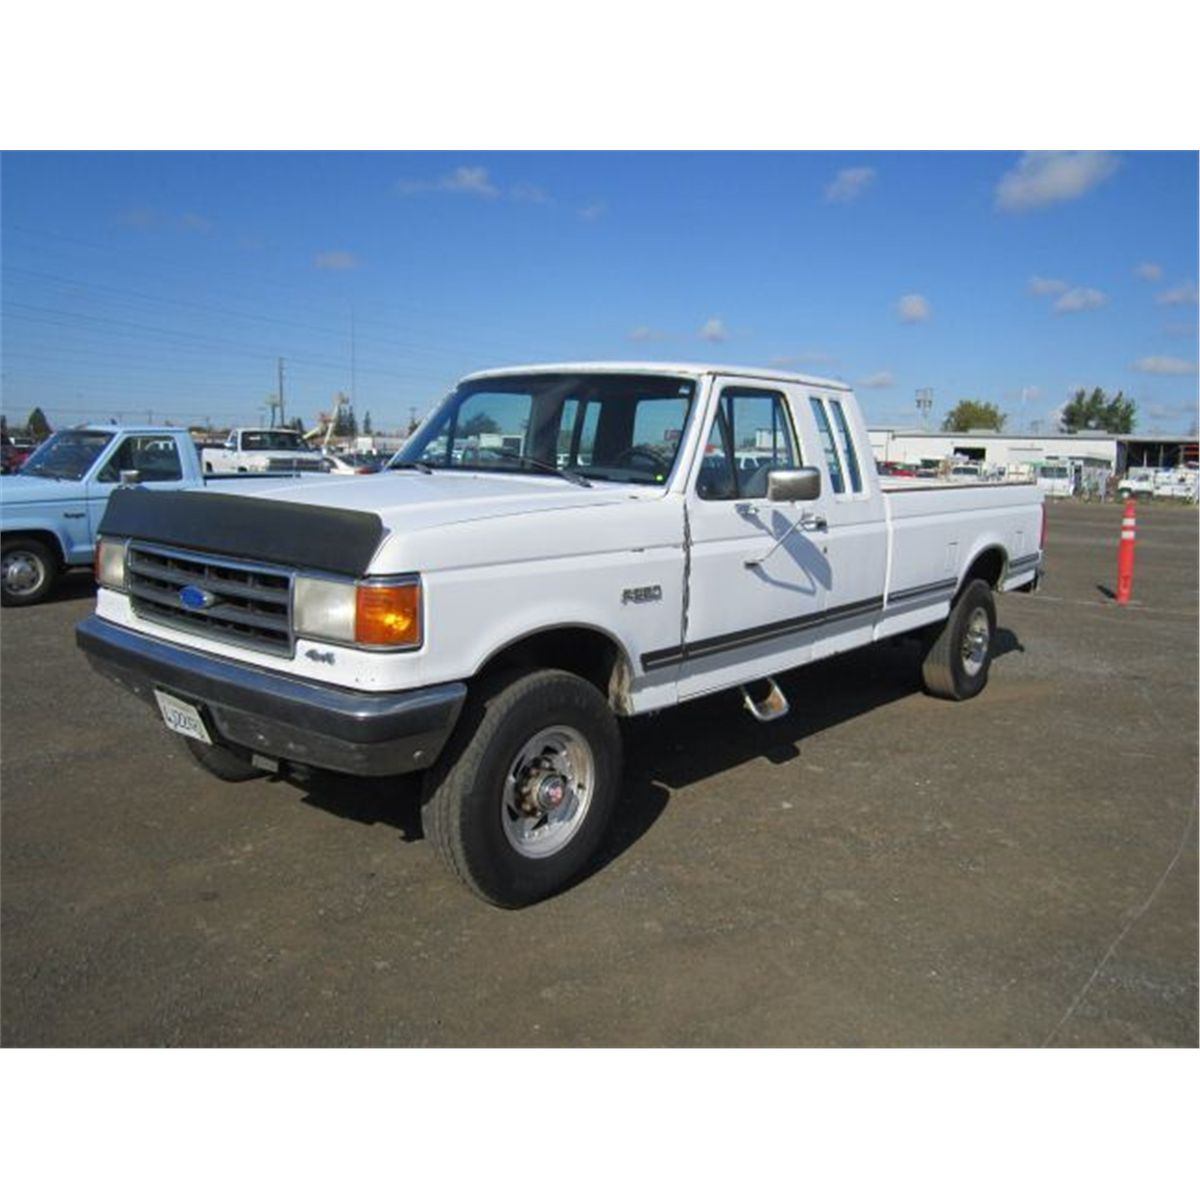 1989 ford f250 towing specs